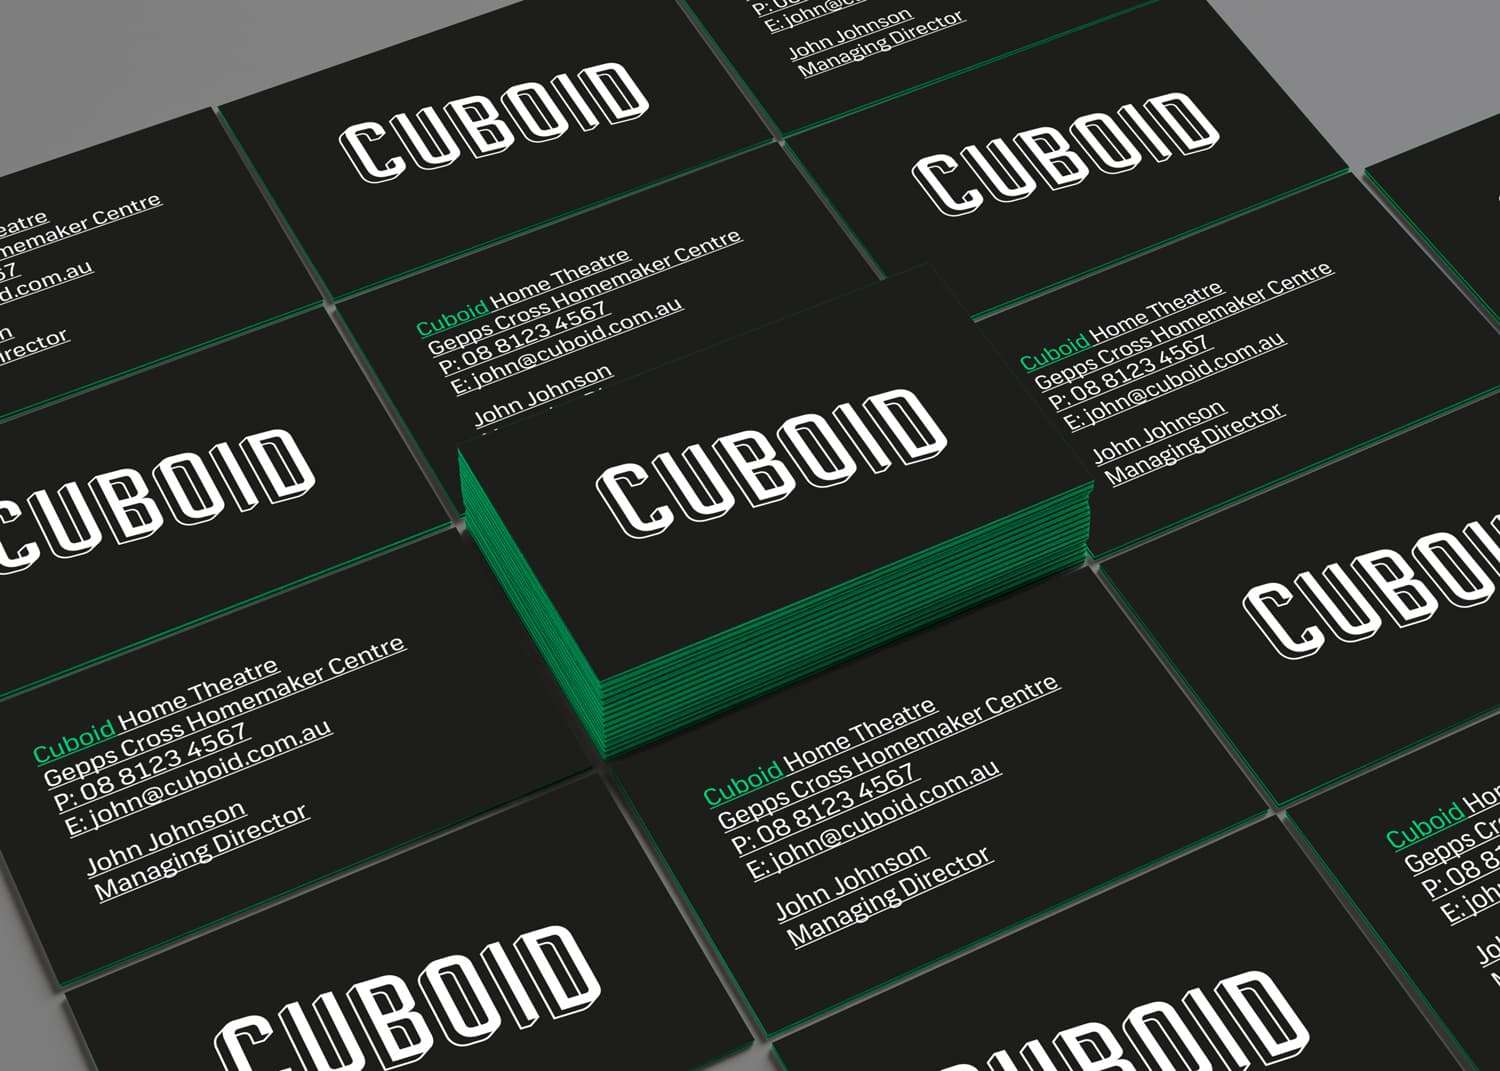 Business cards with edge colouring for Cuboid by Flux Visual Communication